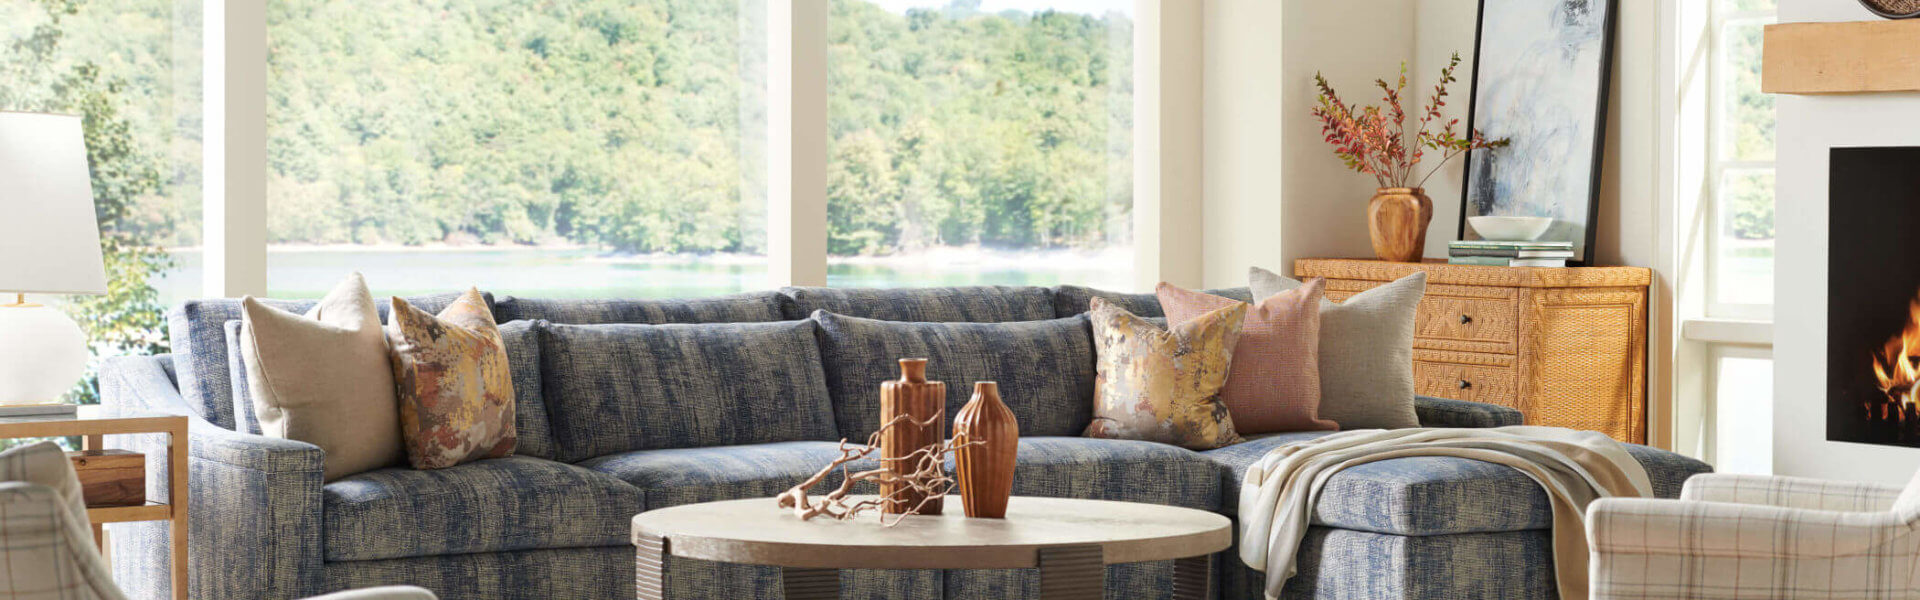 Relaxed Interiors Banner Image